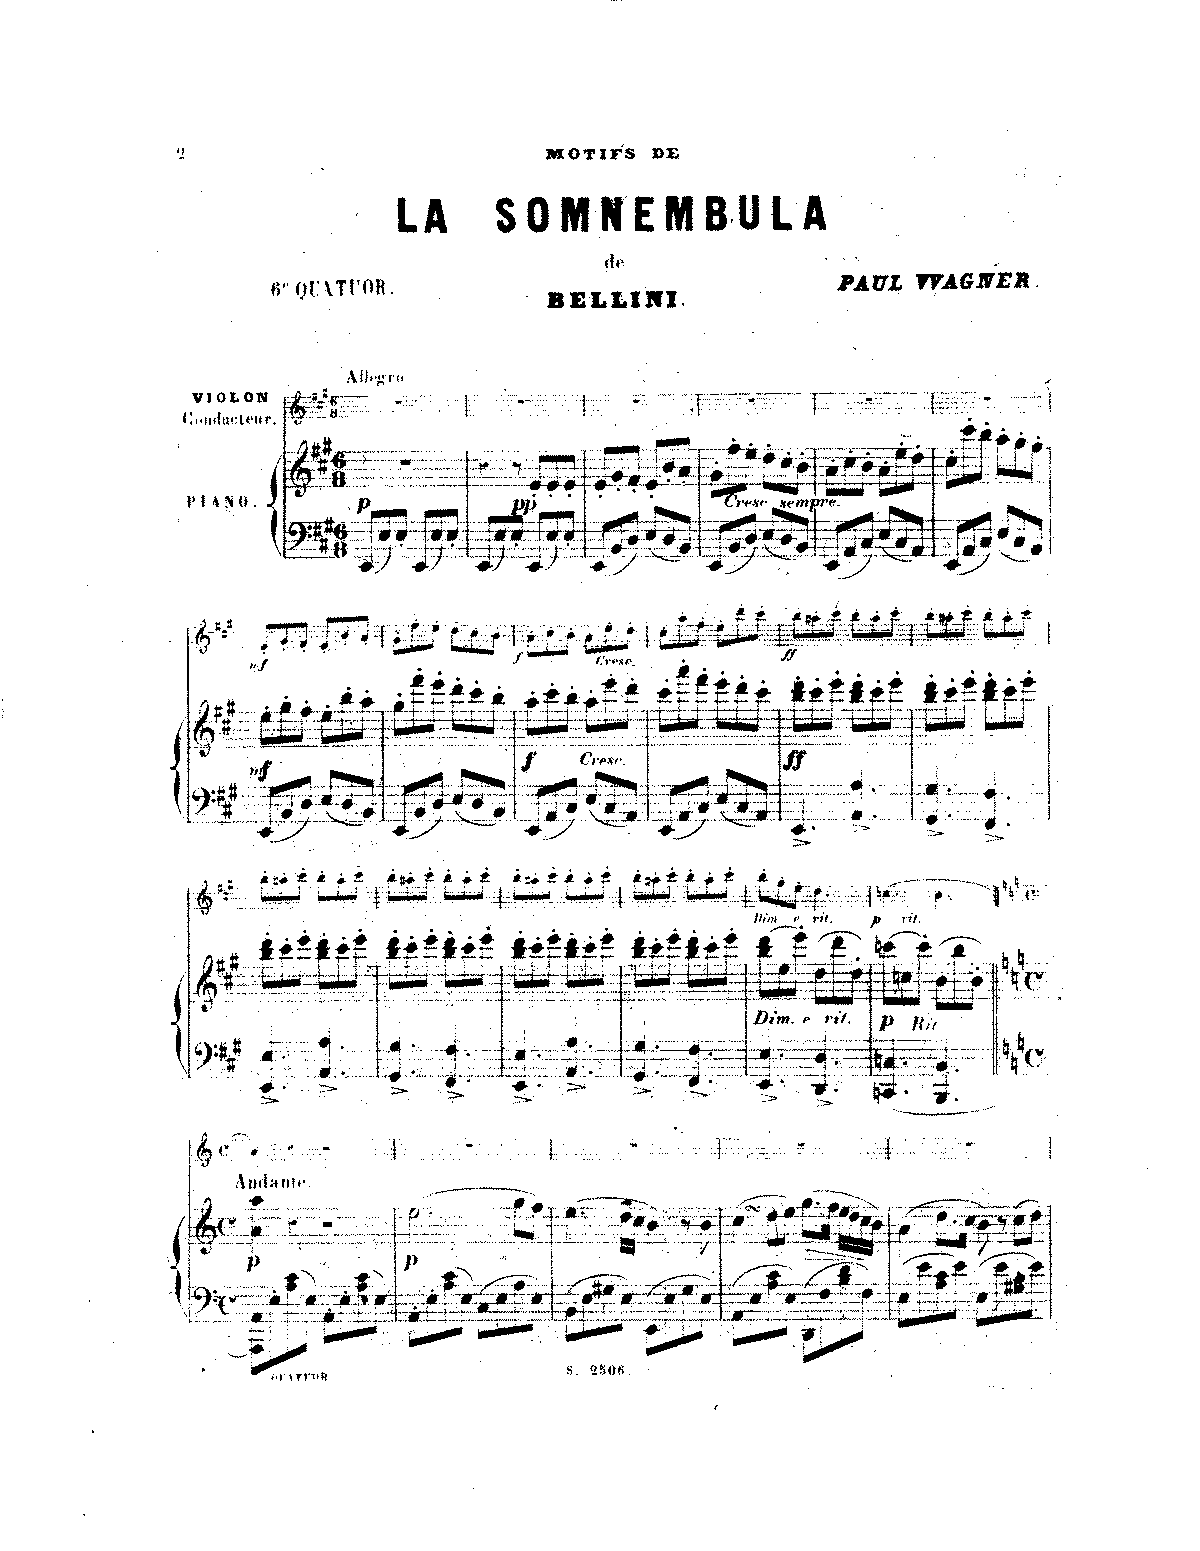 PMLP276153-Wagner, Paul - Quartet No6 Sonnambula PS Sibley.1802.16411.pdf